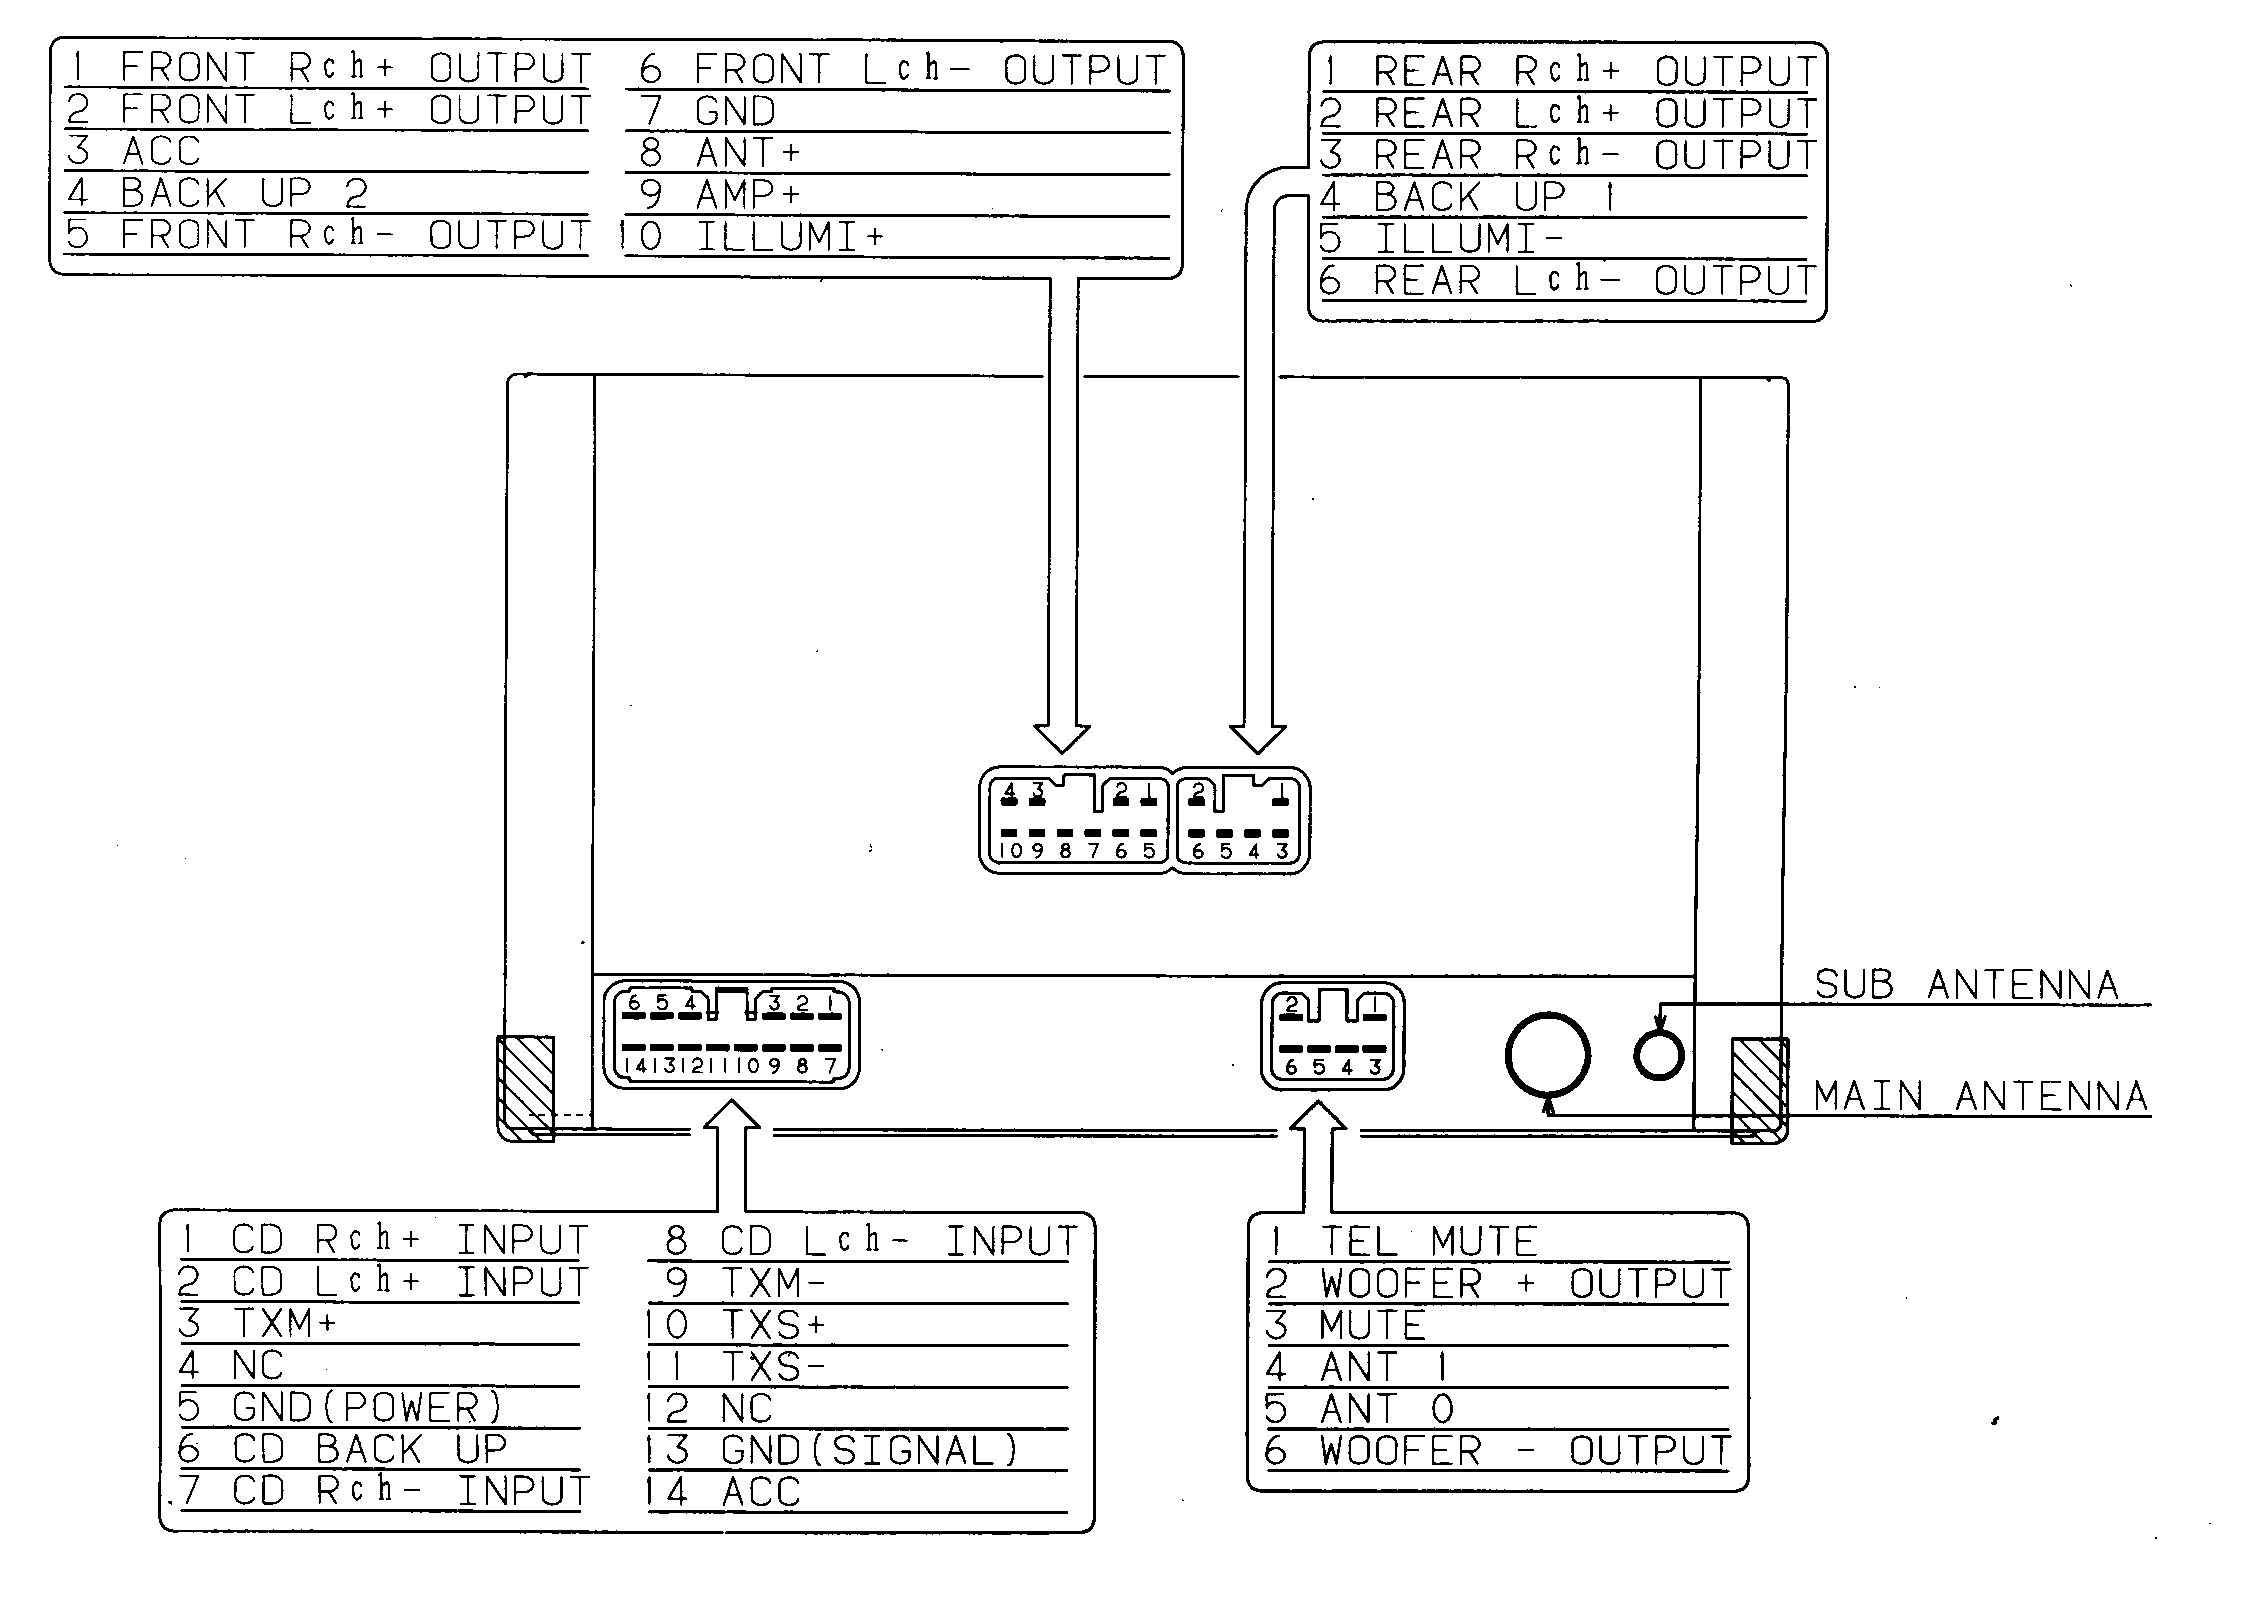 Universal Cd Player Wiring Diagram - Schema Wiring Diagram - Sony Xplod Car Stereo Wiring Diagram